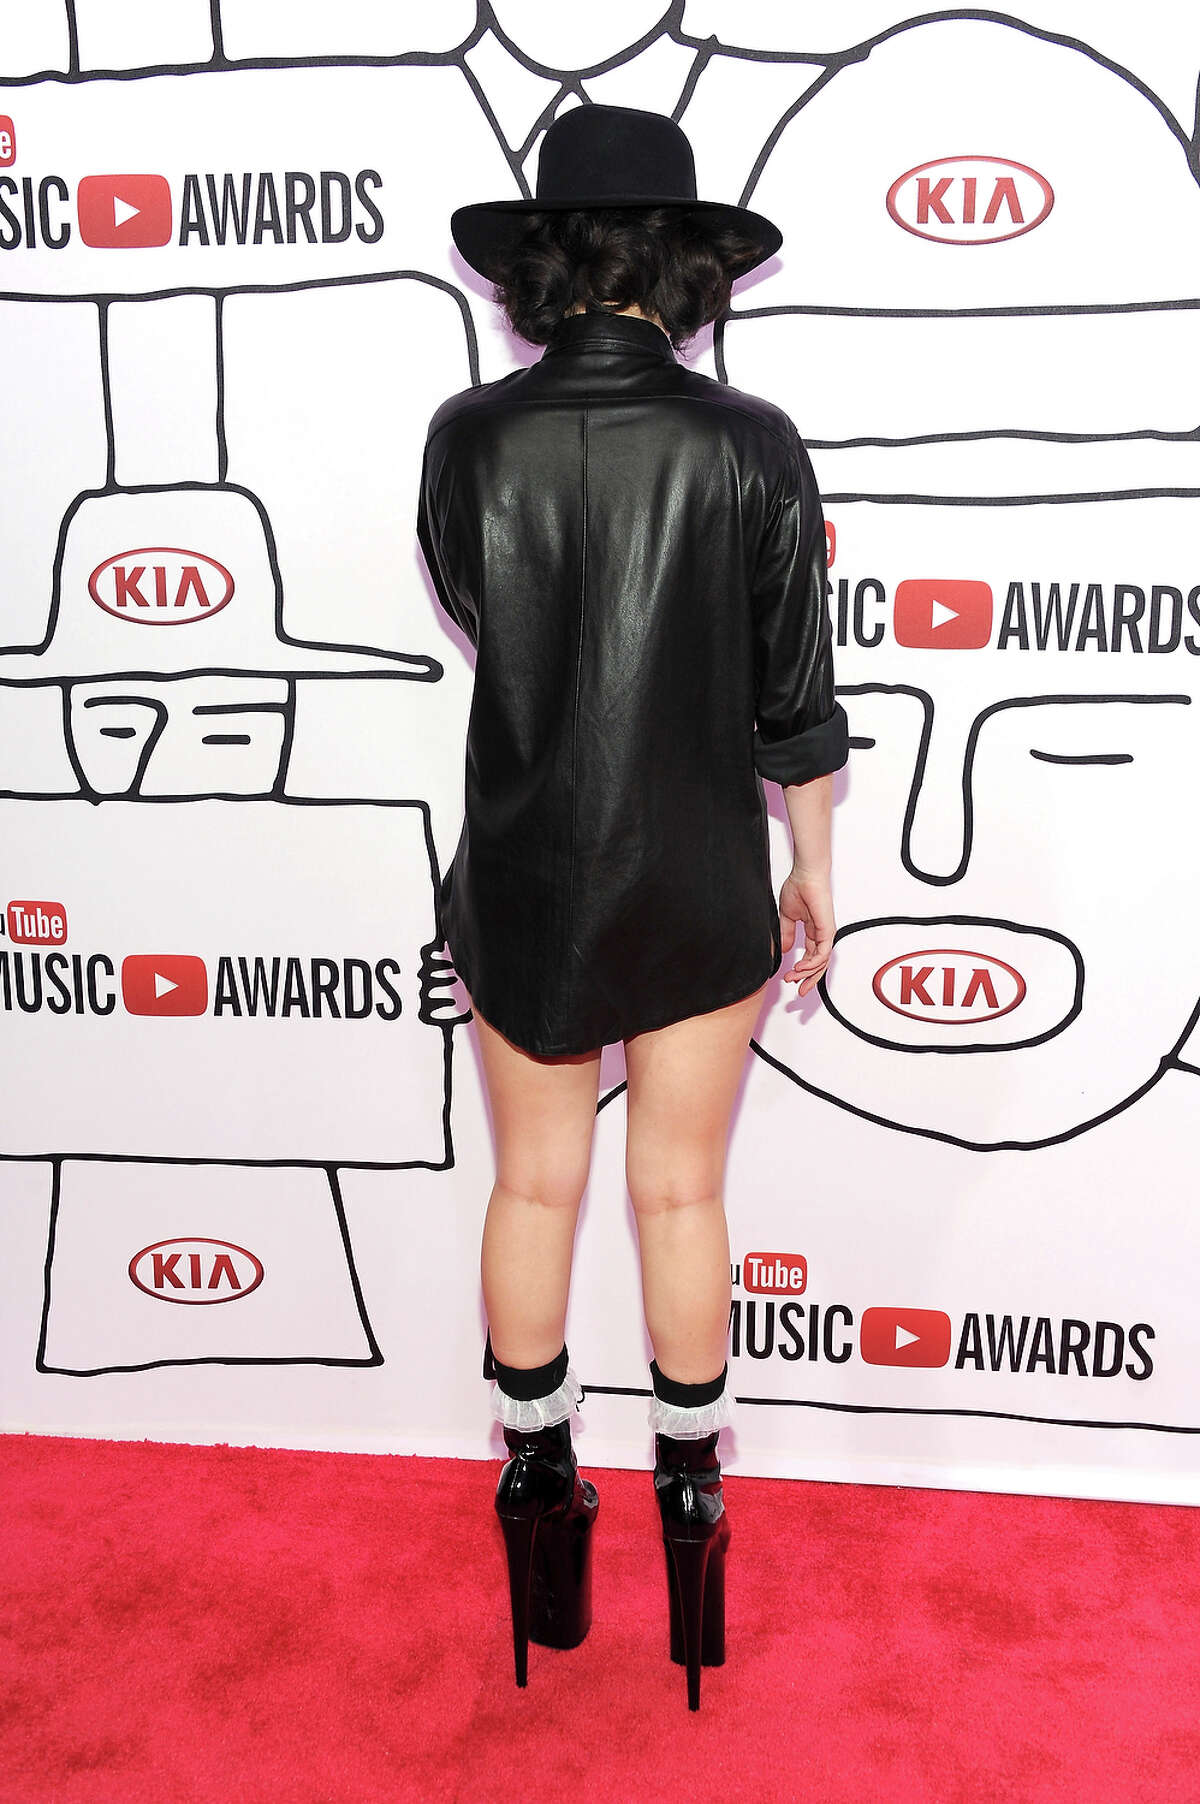 Lady Gaga attends the 2013 YouTube Music awards at Pier 36 on November 3, 2013 in New York City.